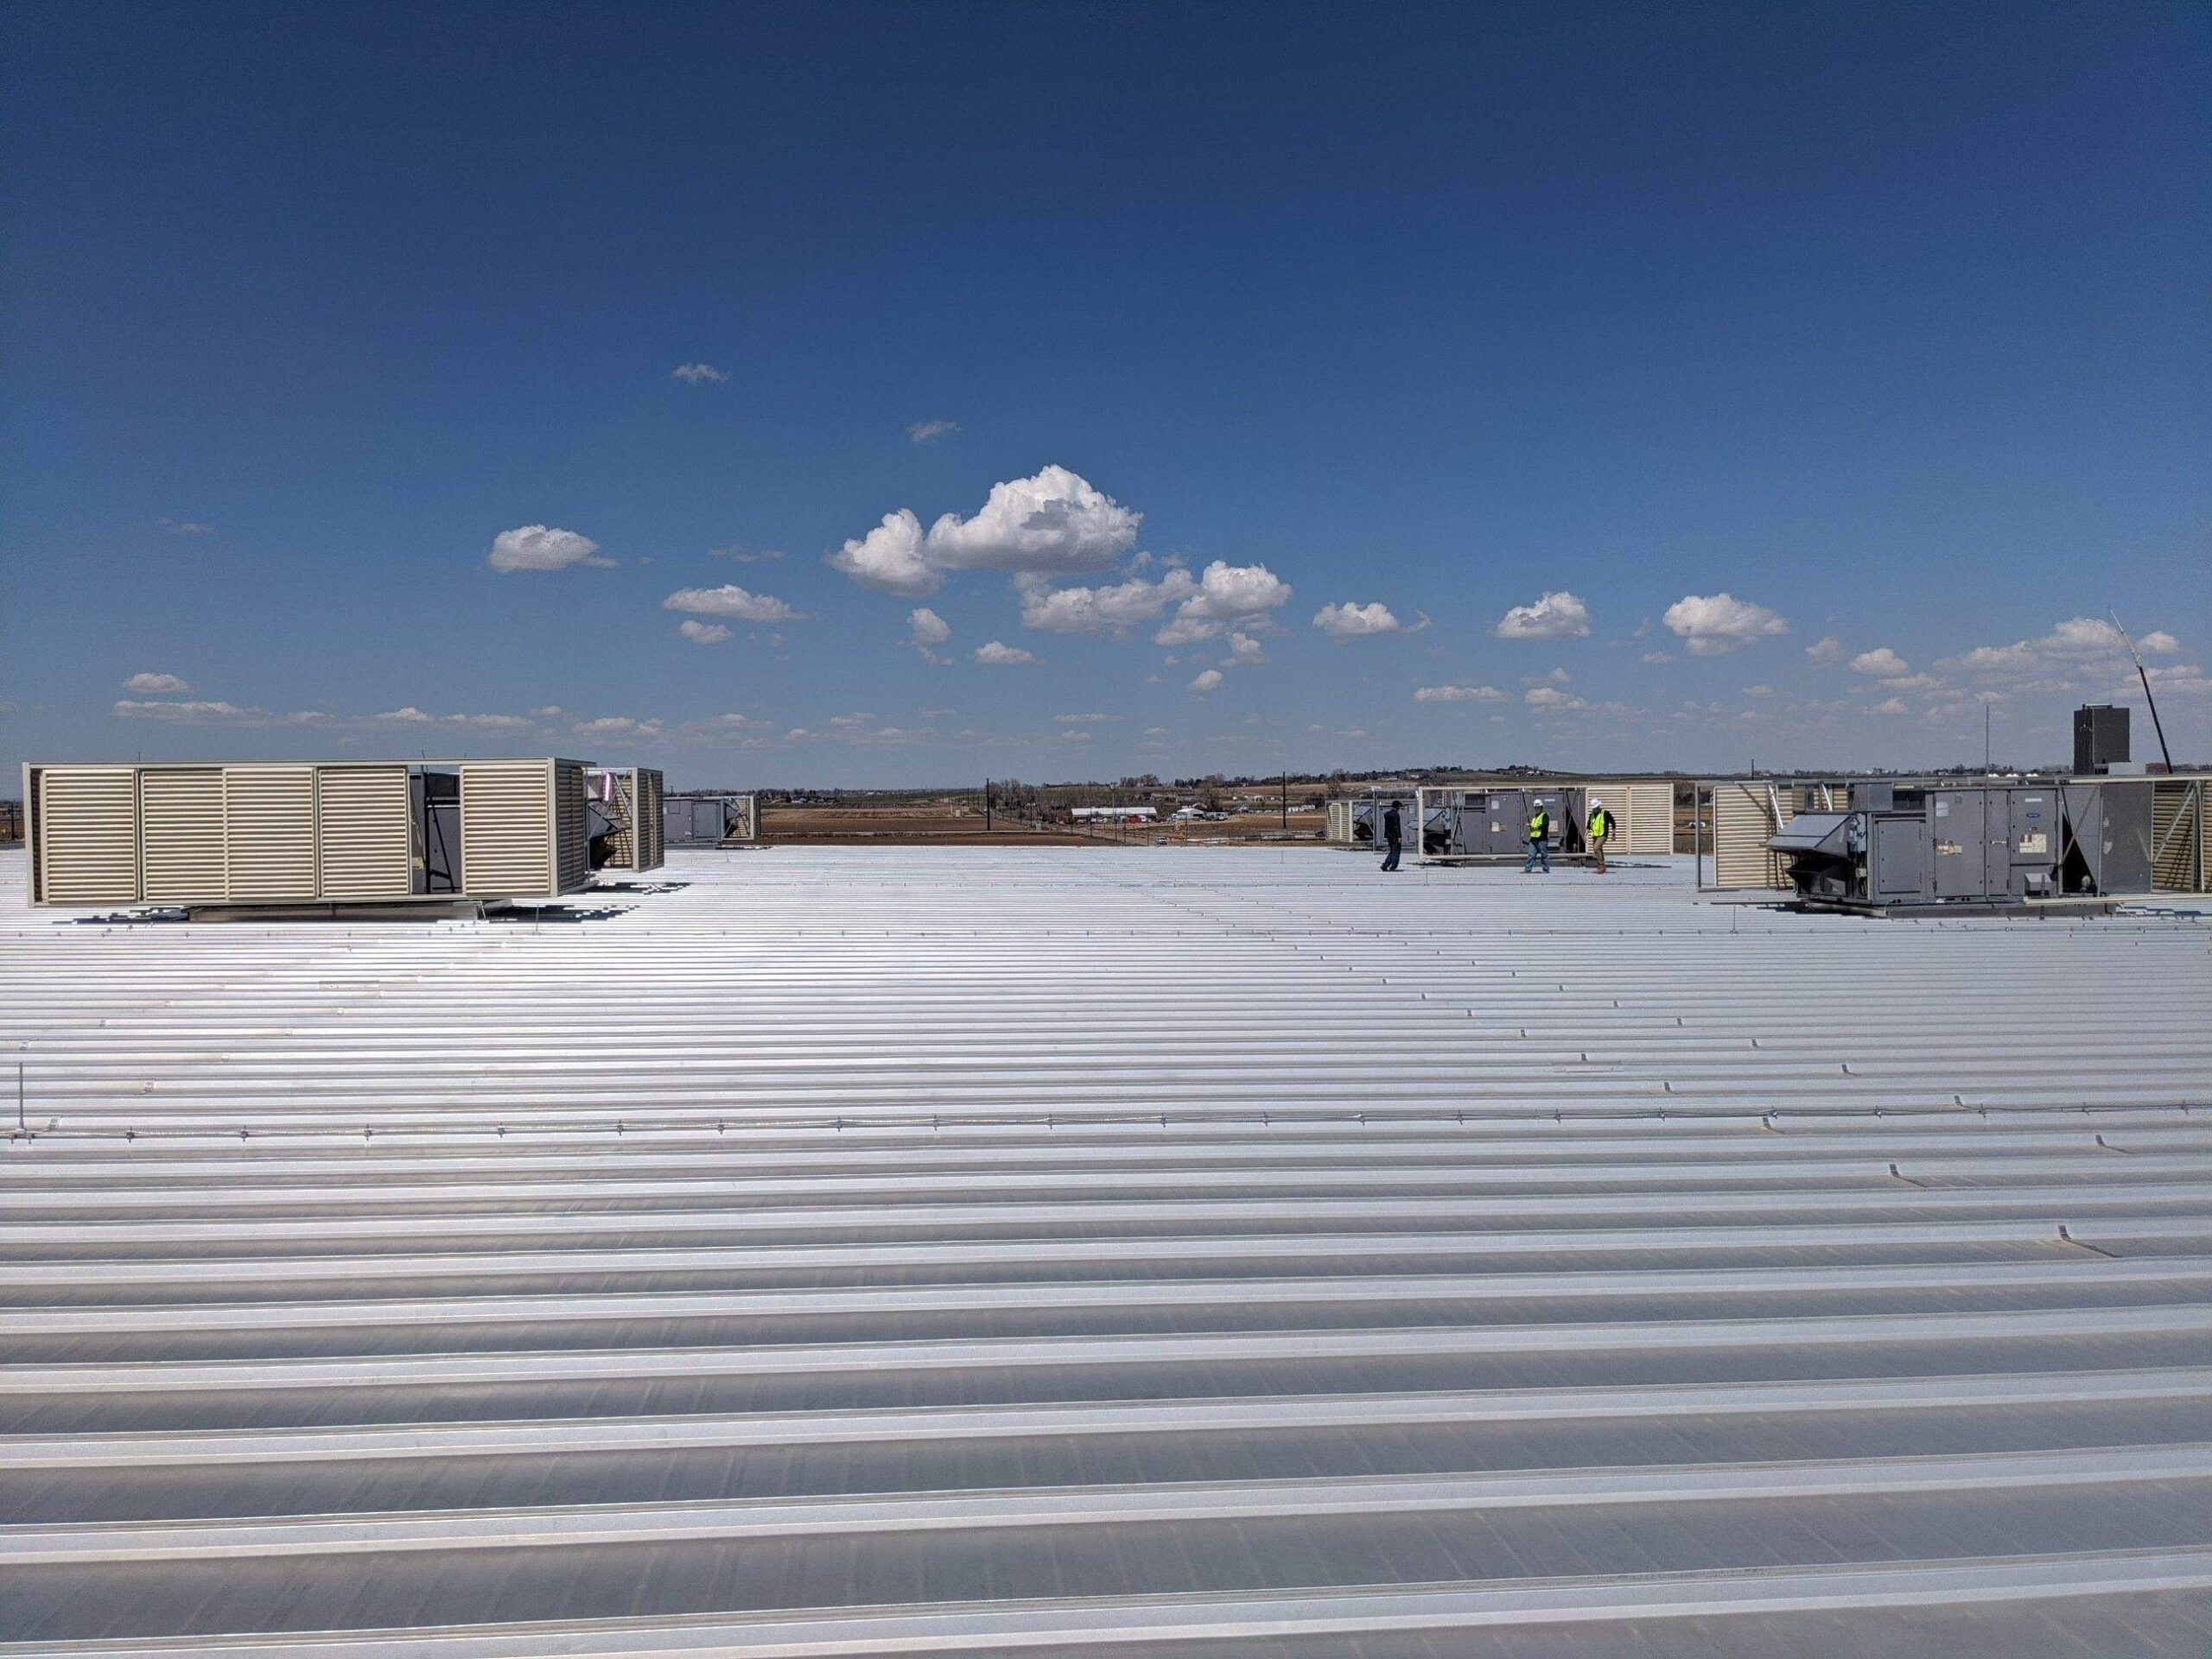 Professional Commercial Roofing Replacement: What You Need to Know